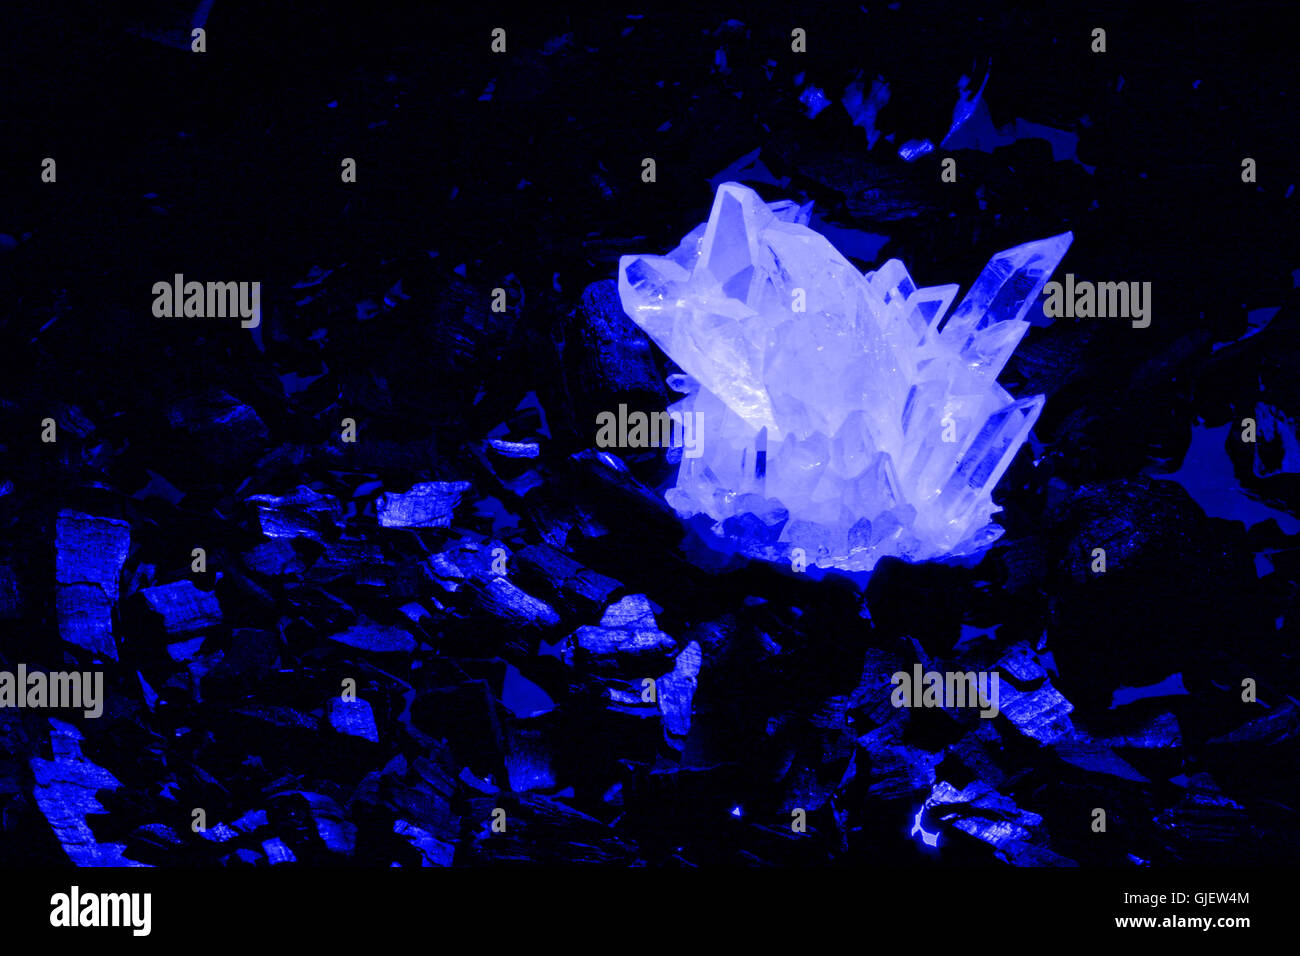 blue cold cure - Stock Image